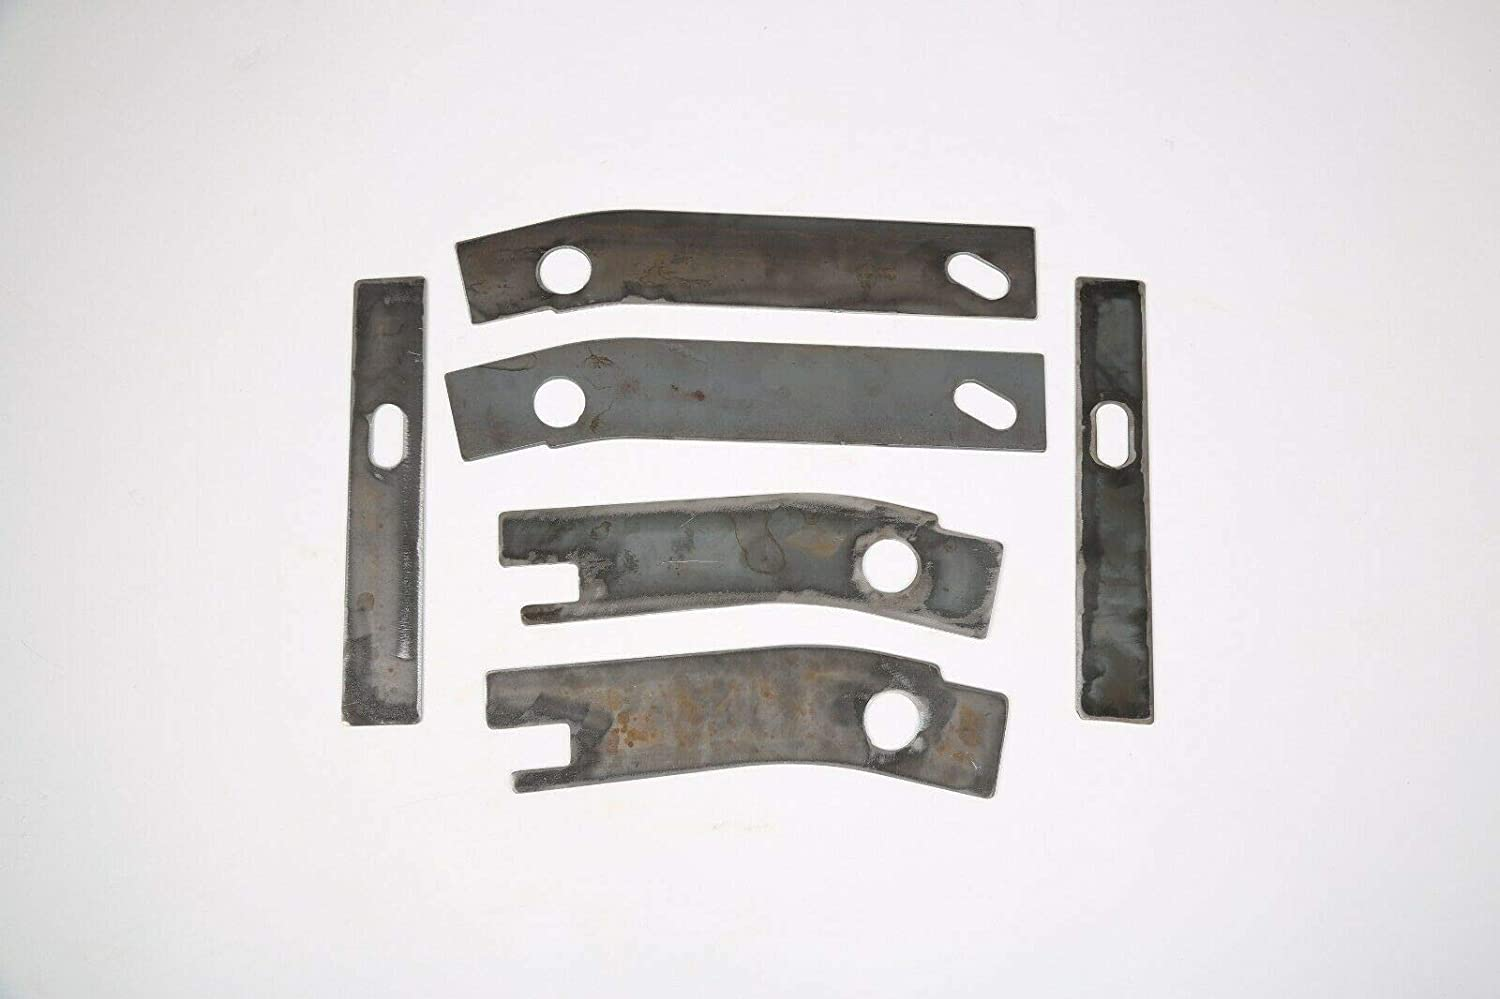 Rear Frame Repair Rusted Shackle Weld Plate Fit 1986-1995 For Jeep Wrangler YJ